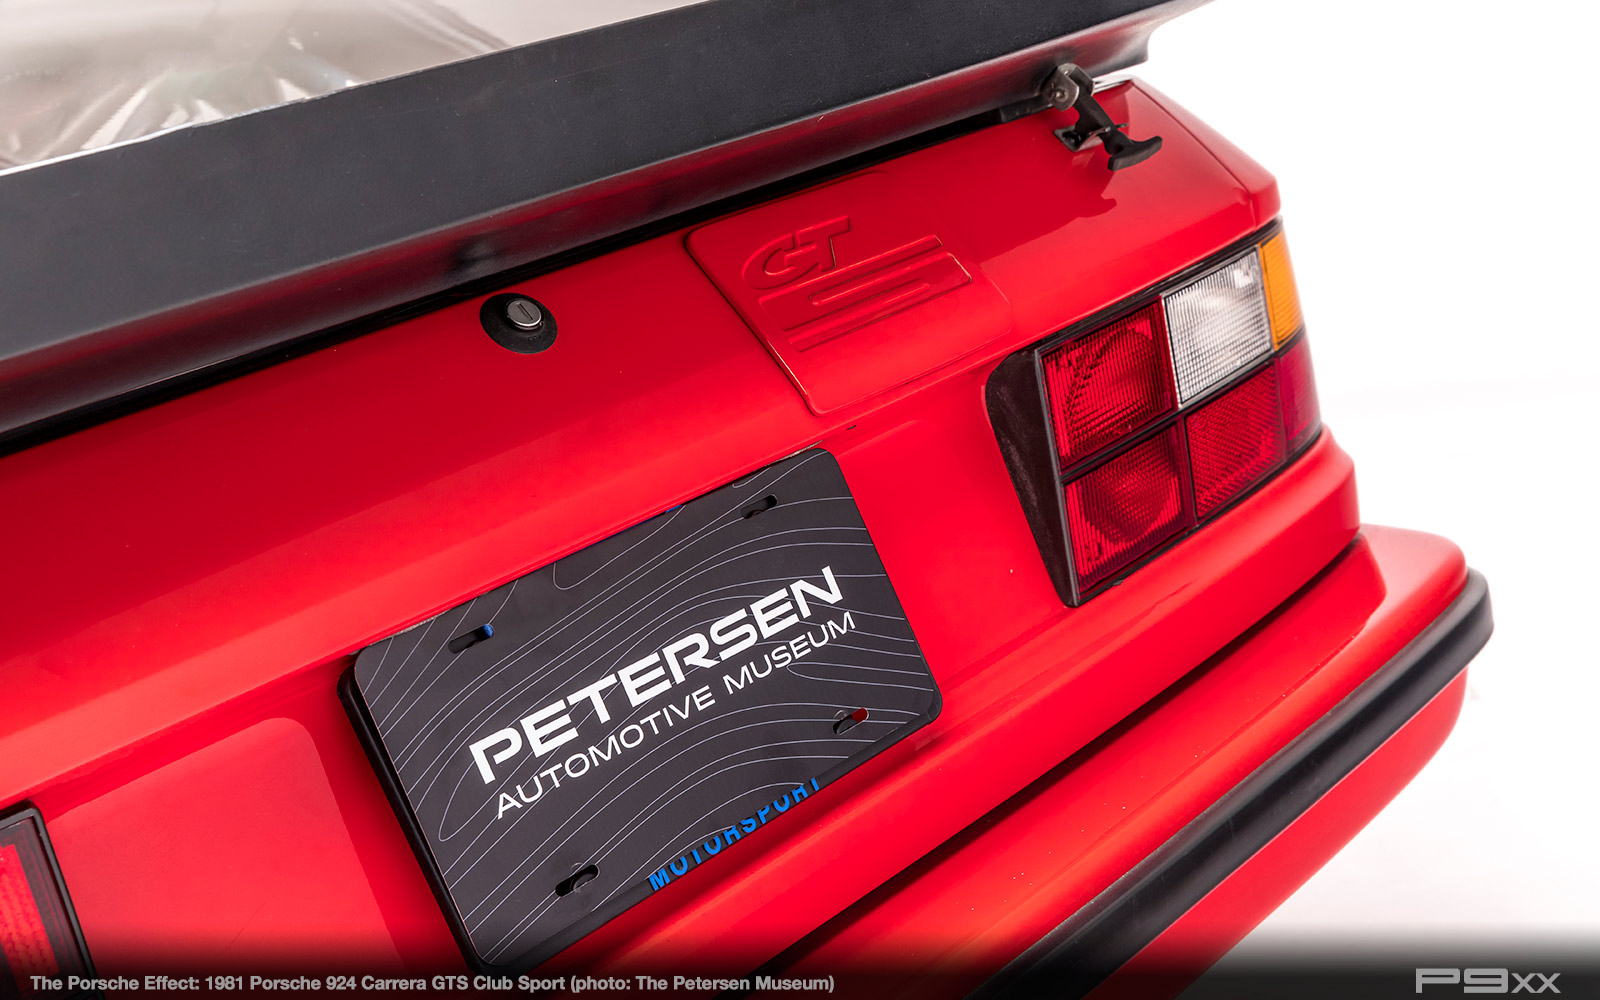 1981-924-Carrera-GTS-Club-Sport-Petersen-Automotive-Museum-The-Porsche-Effect-416